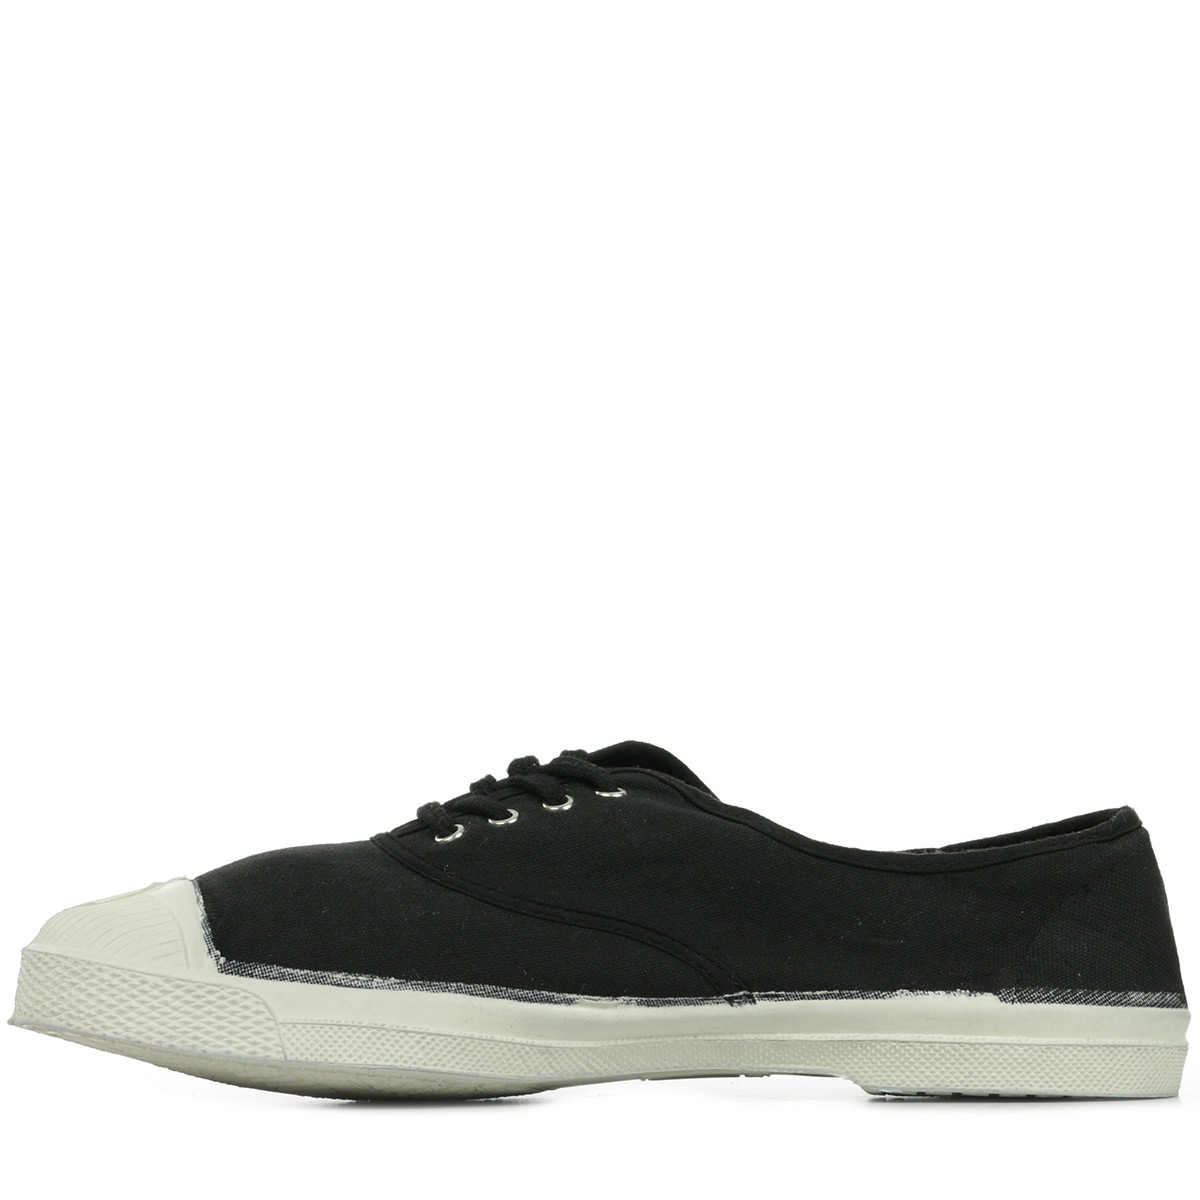 Bensimon TENNIS LACET Carbone